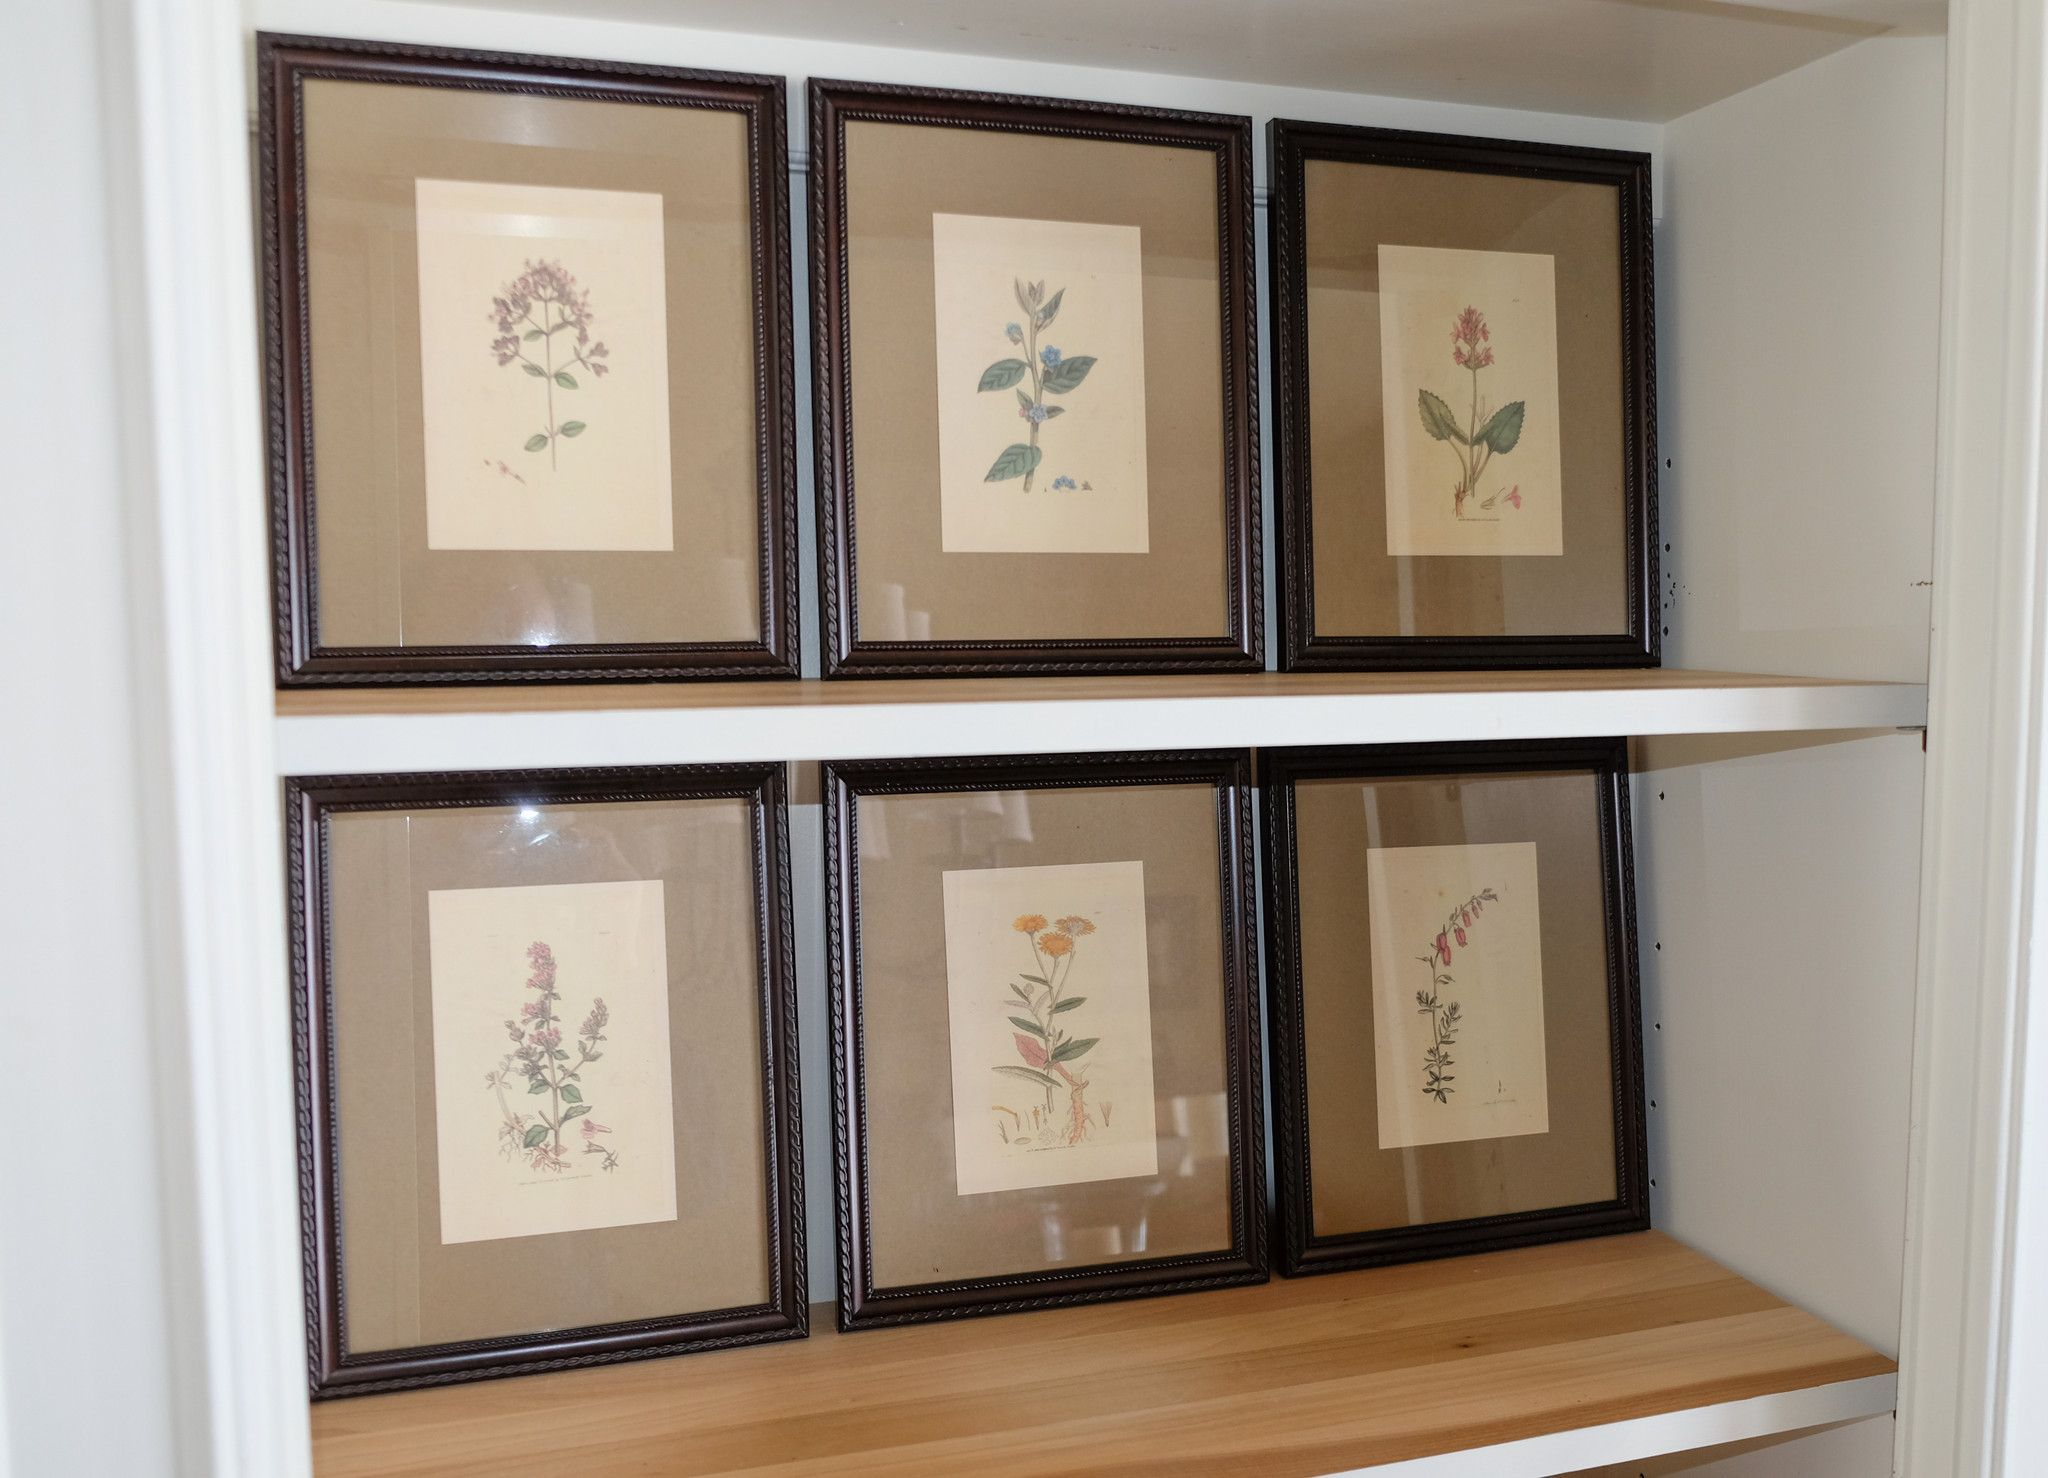 Botanical prints have vintage written all over them display individually or as a set frame size 8 5 x 11 select individually or as a set of 6